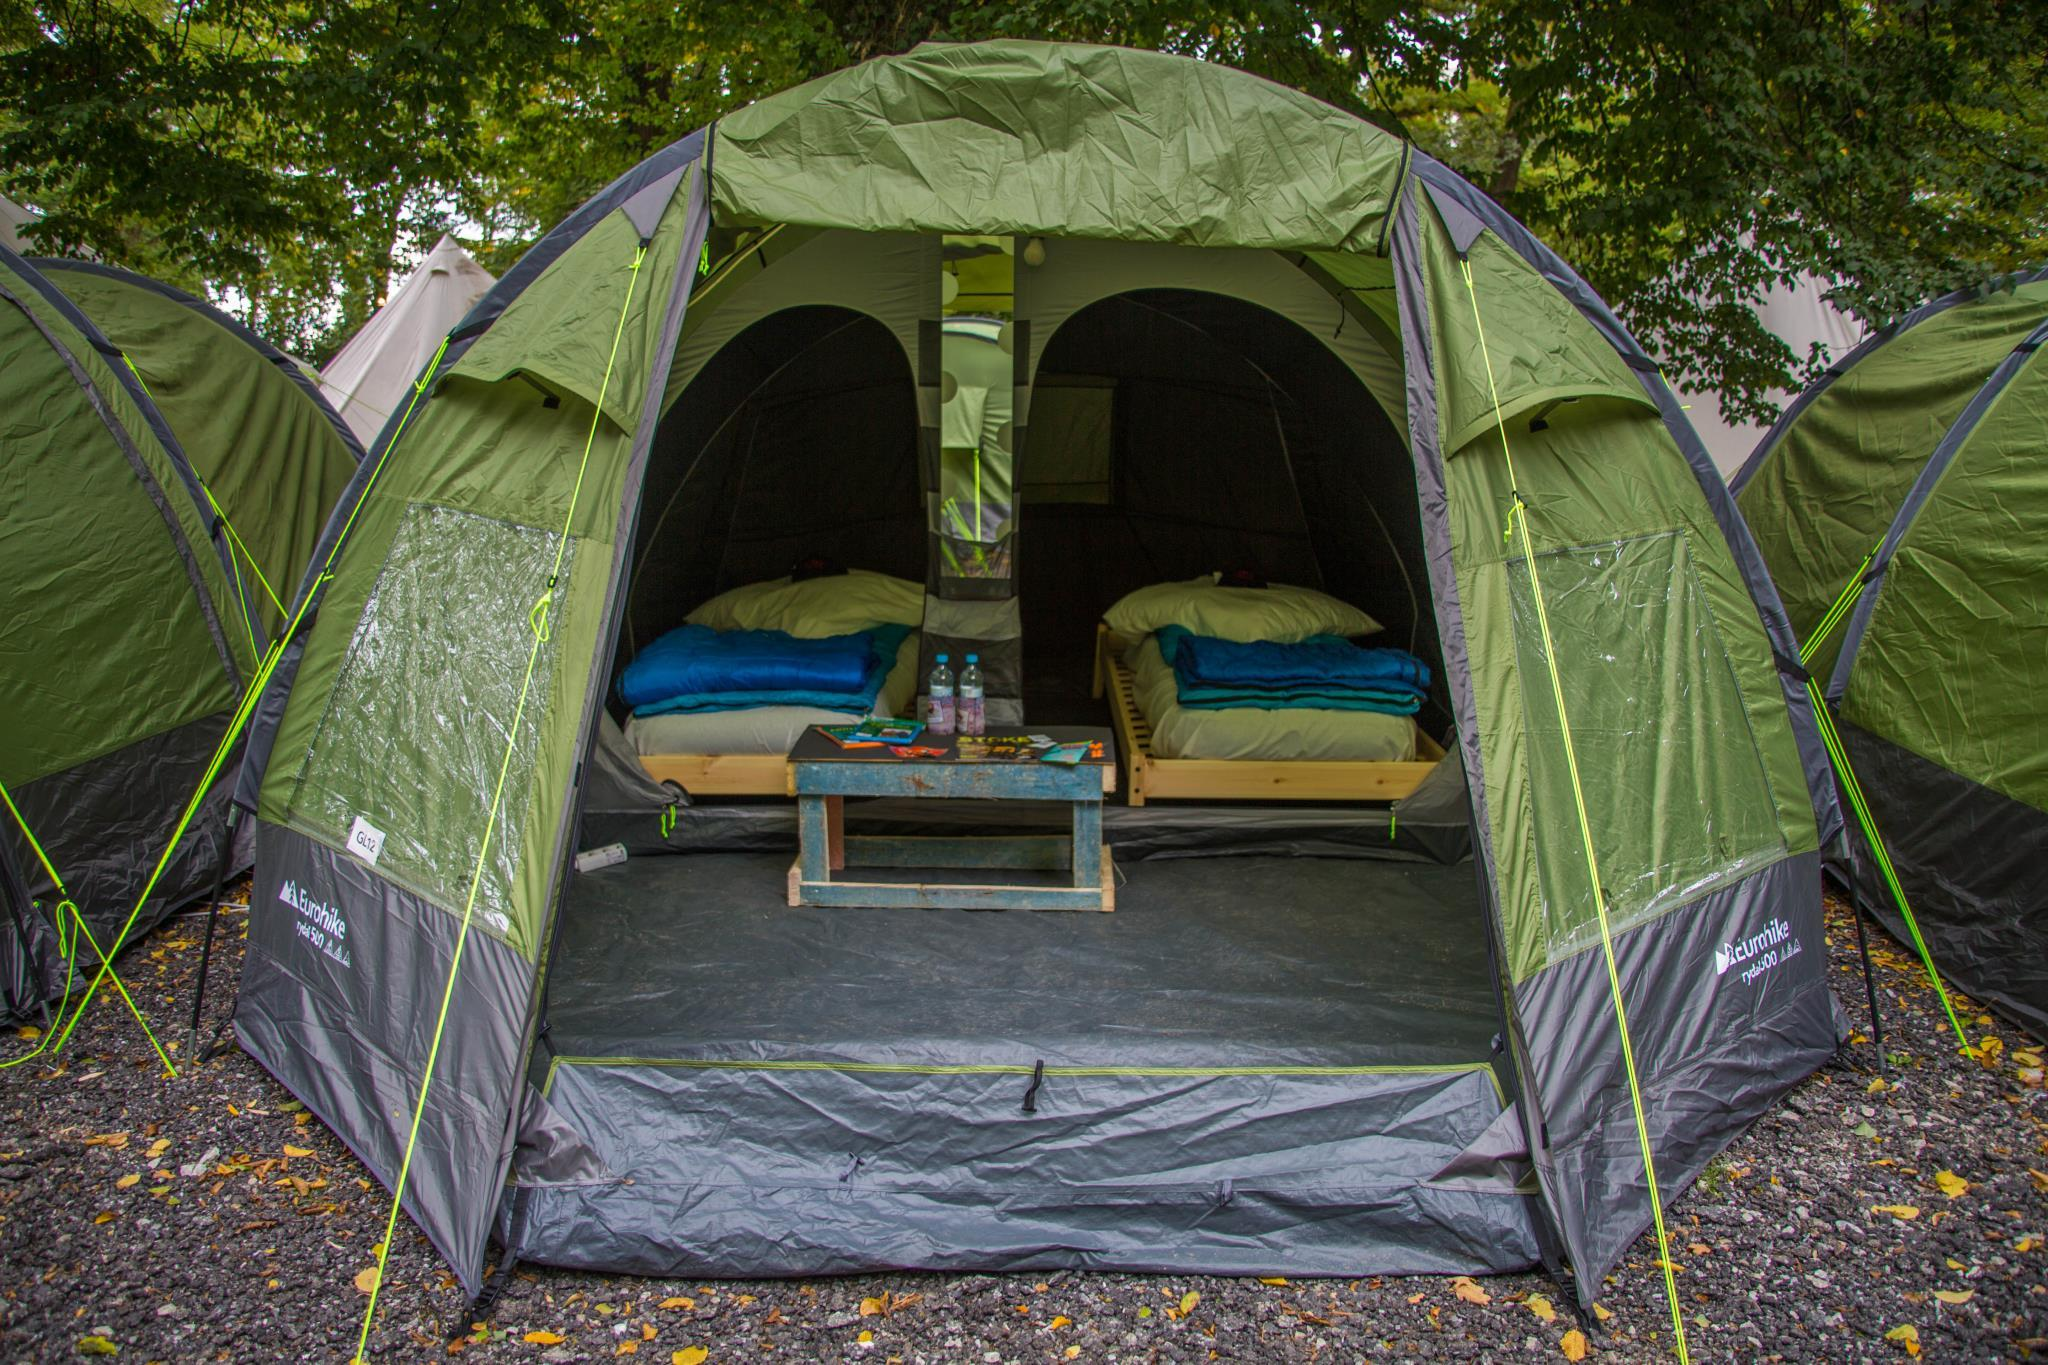 Cort standard iluminat - doar pentru cei peste 10 ani (Standard Glamping Tent - Above 10 Years Old Only)